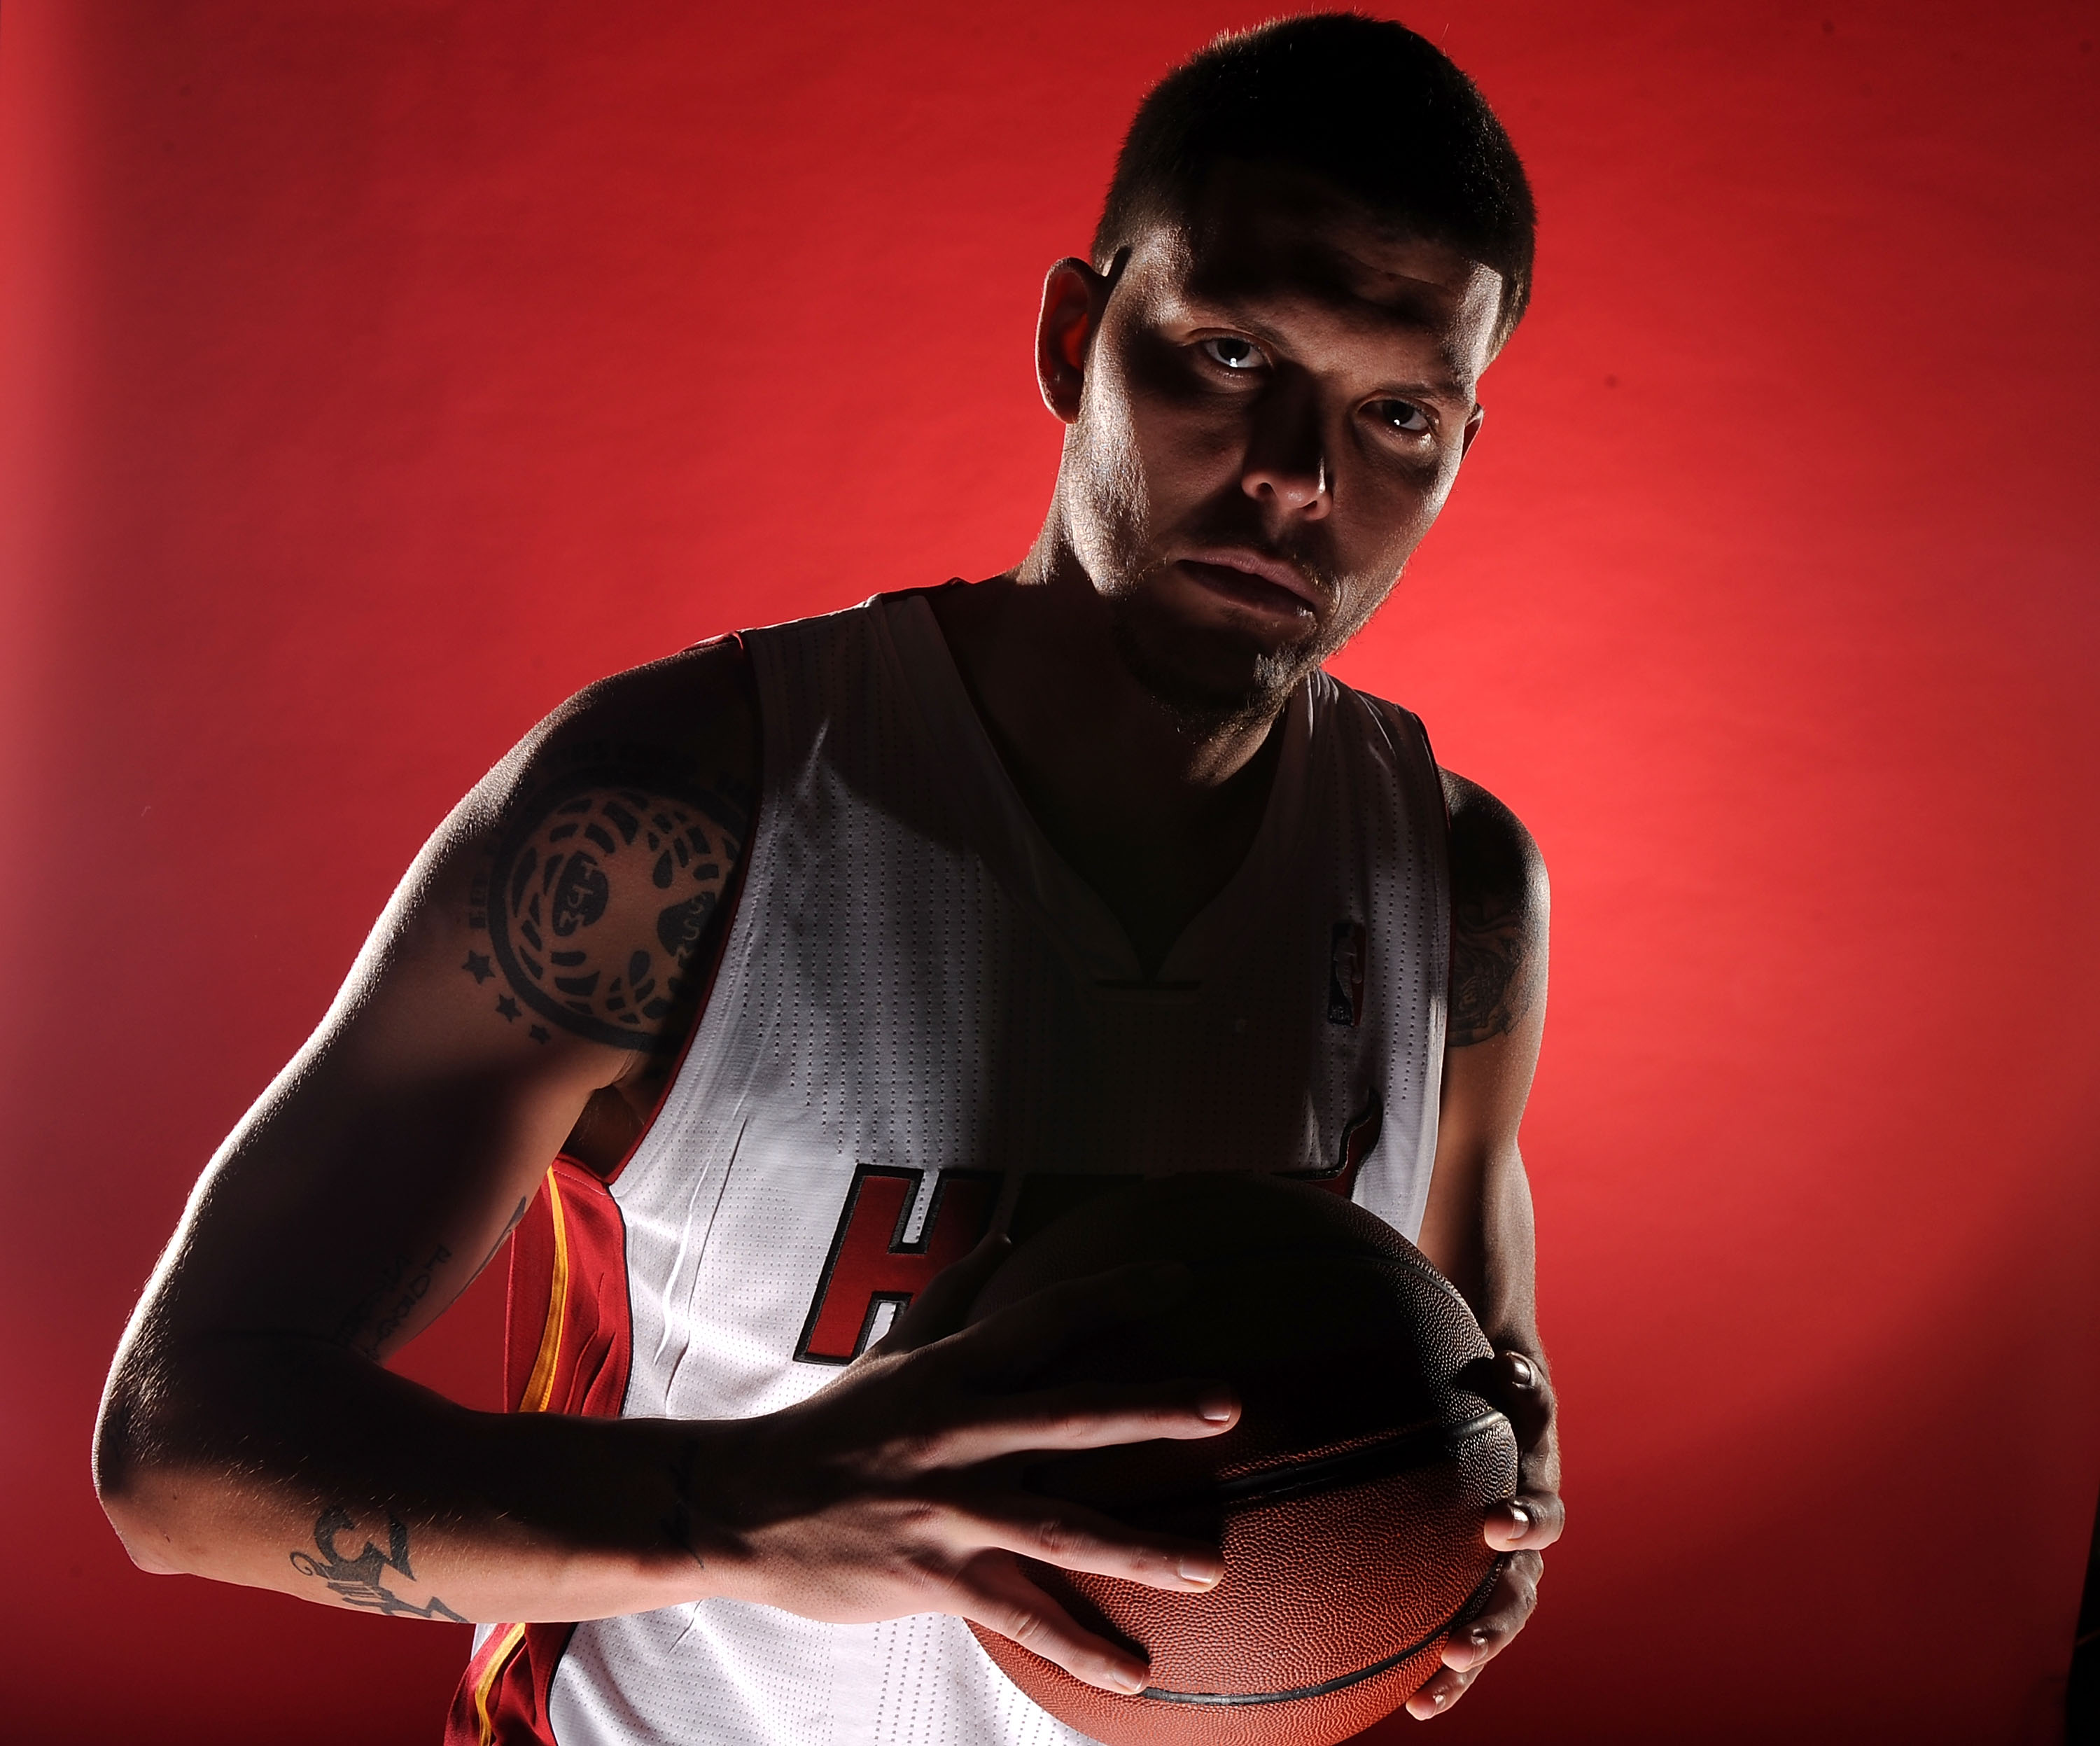 MIAMI - SEPTEMBER 27:  Mike Miller #13 of the Miami Heat pose for photos during media day at the Bank United Center on September 27, 2010 in Miami, Florida. NOTE TO USER: User expressly acknowledges and agrees that, by downloading and/or using this Photog